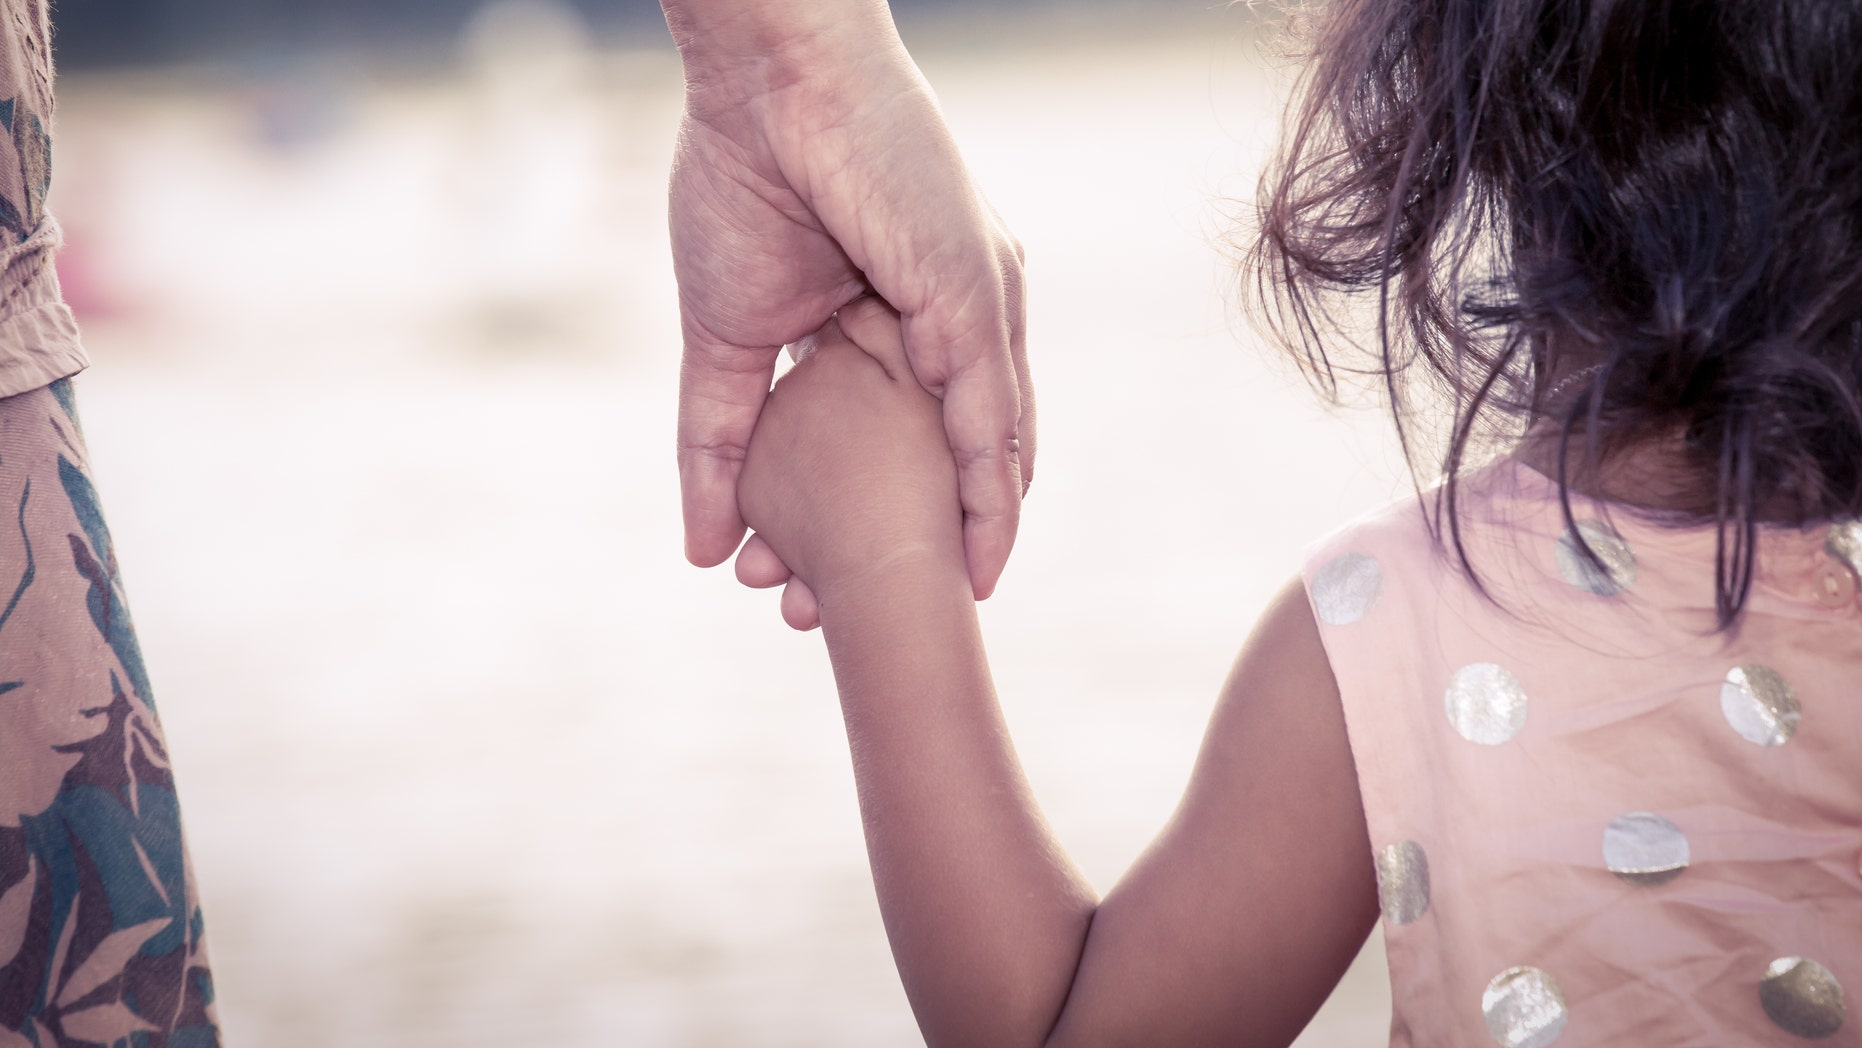 child cute little girl and mother holding hand together with love in vintage color filter